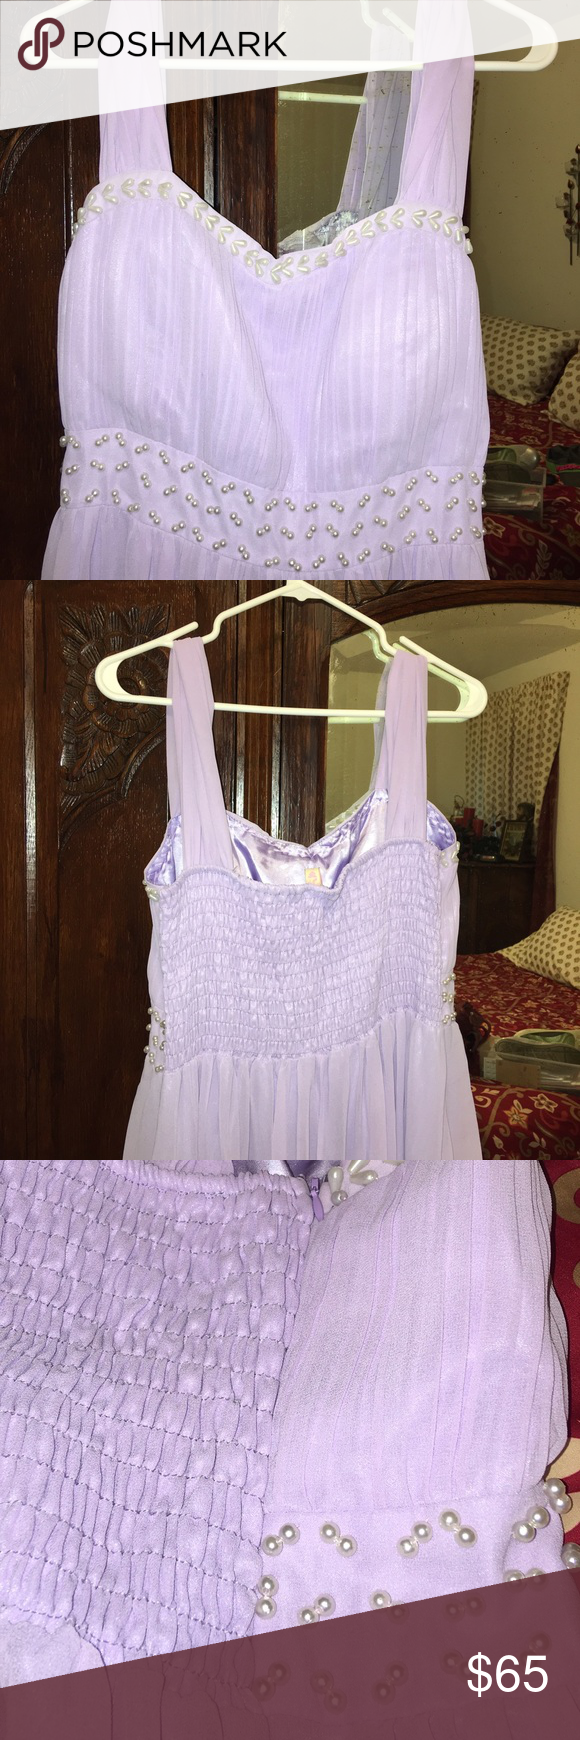 Light purple floor length dress 16w/18w Beautiful dress. Satin under with chiffon overlay. Pearl design around bodice. Side zipper also. Dress says 3x but fits more like a 16-18. Stretchy back. Wore for an hour during a ceremony. Message me for any other pictures :) K2 Dresses Maxi